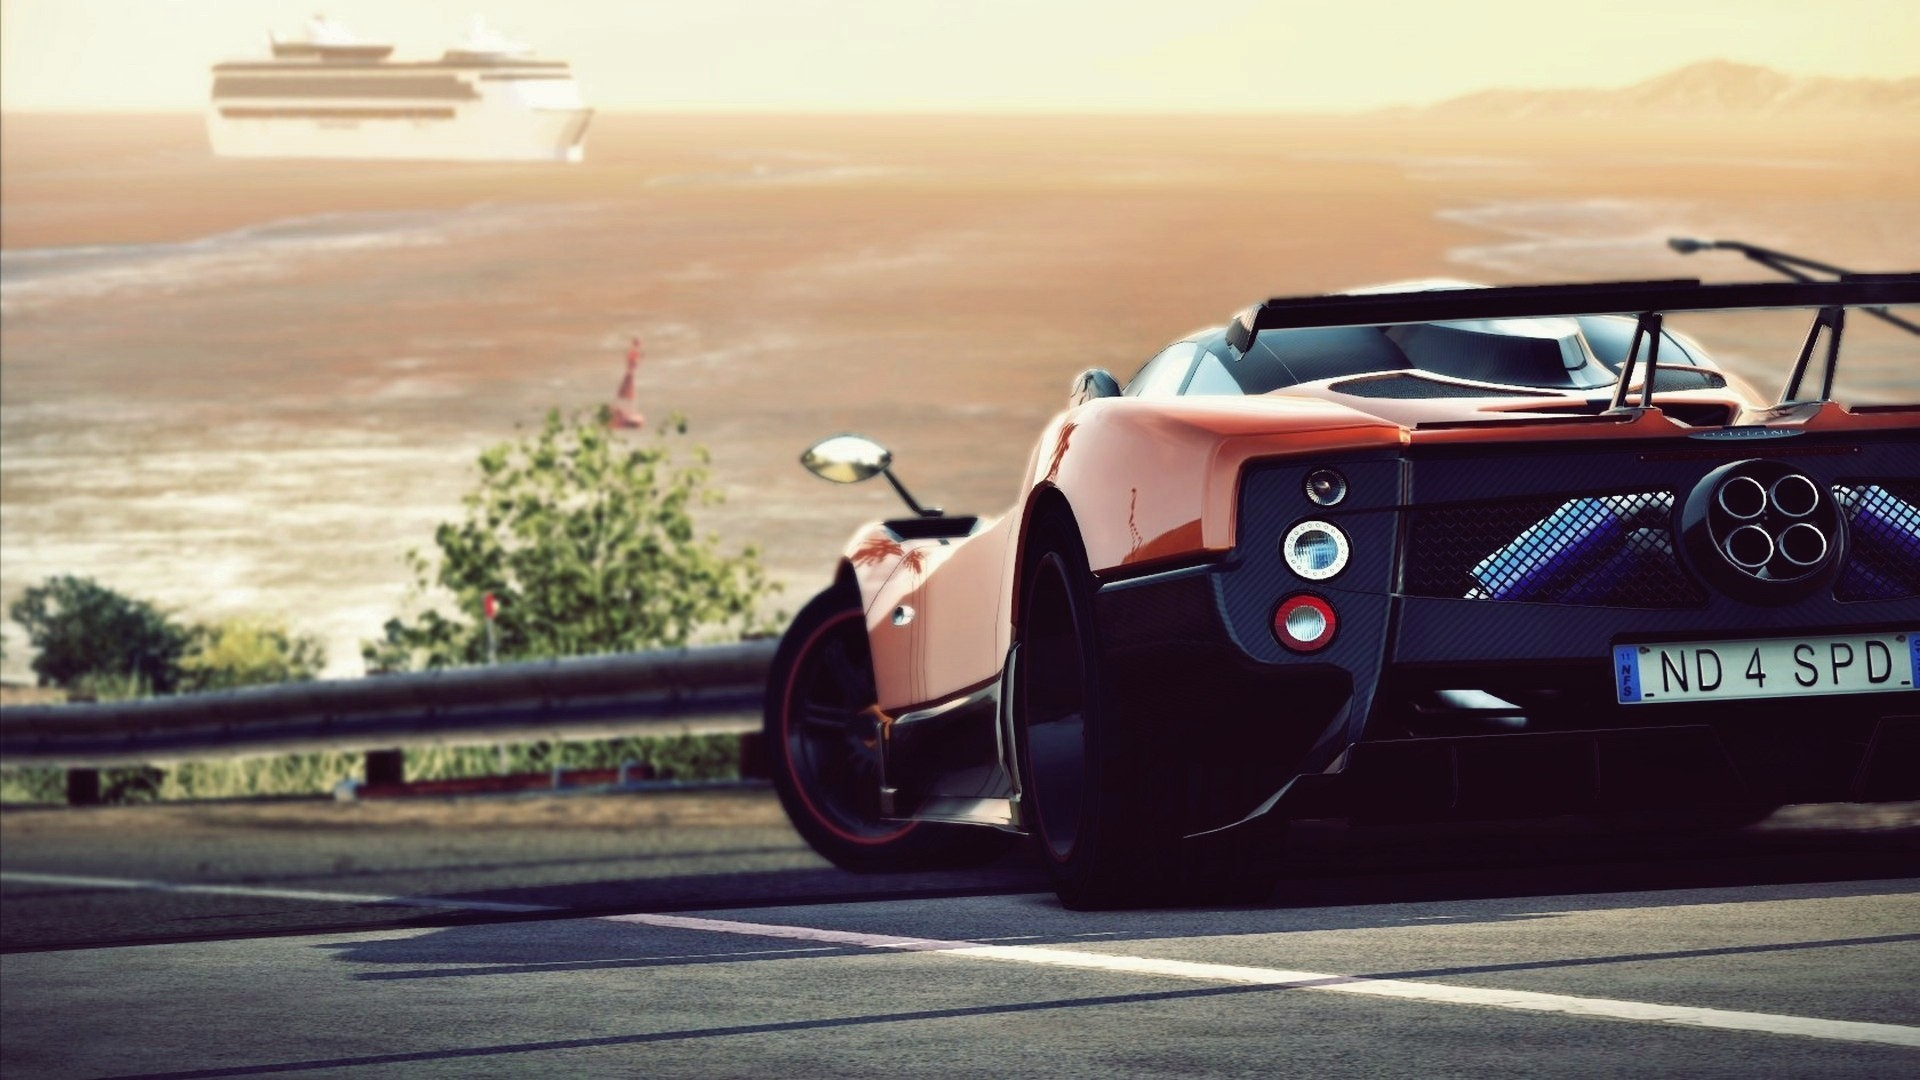 50 Super Sports Car Wallpapers Thatll Blow Your Desktop Away 1920x1080